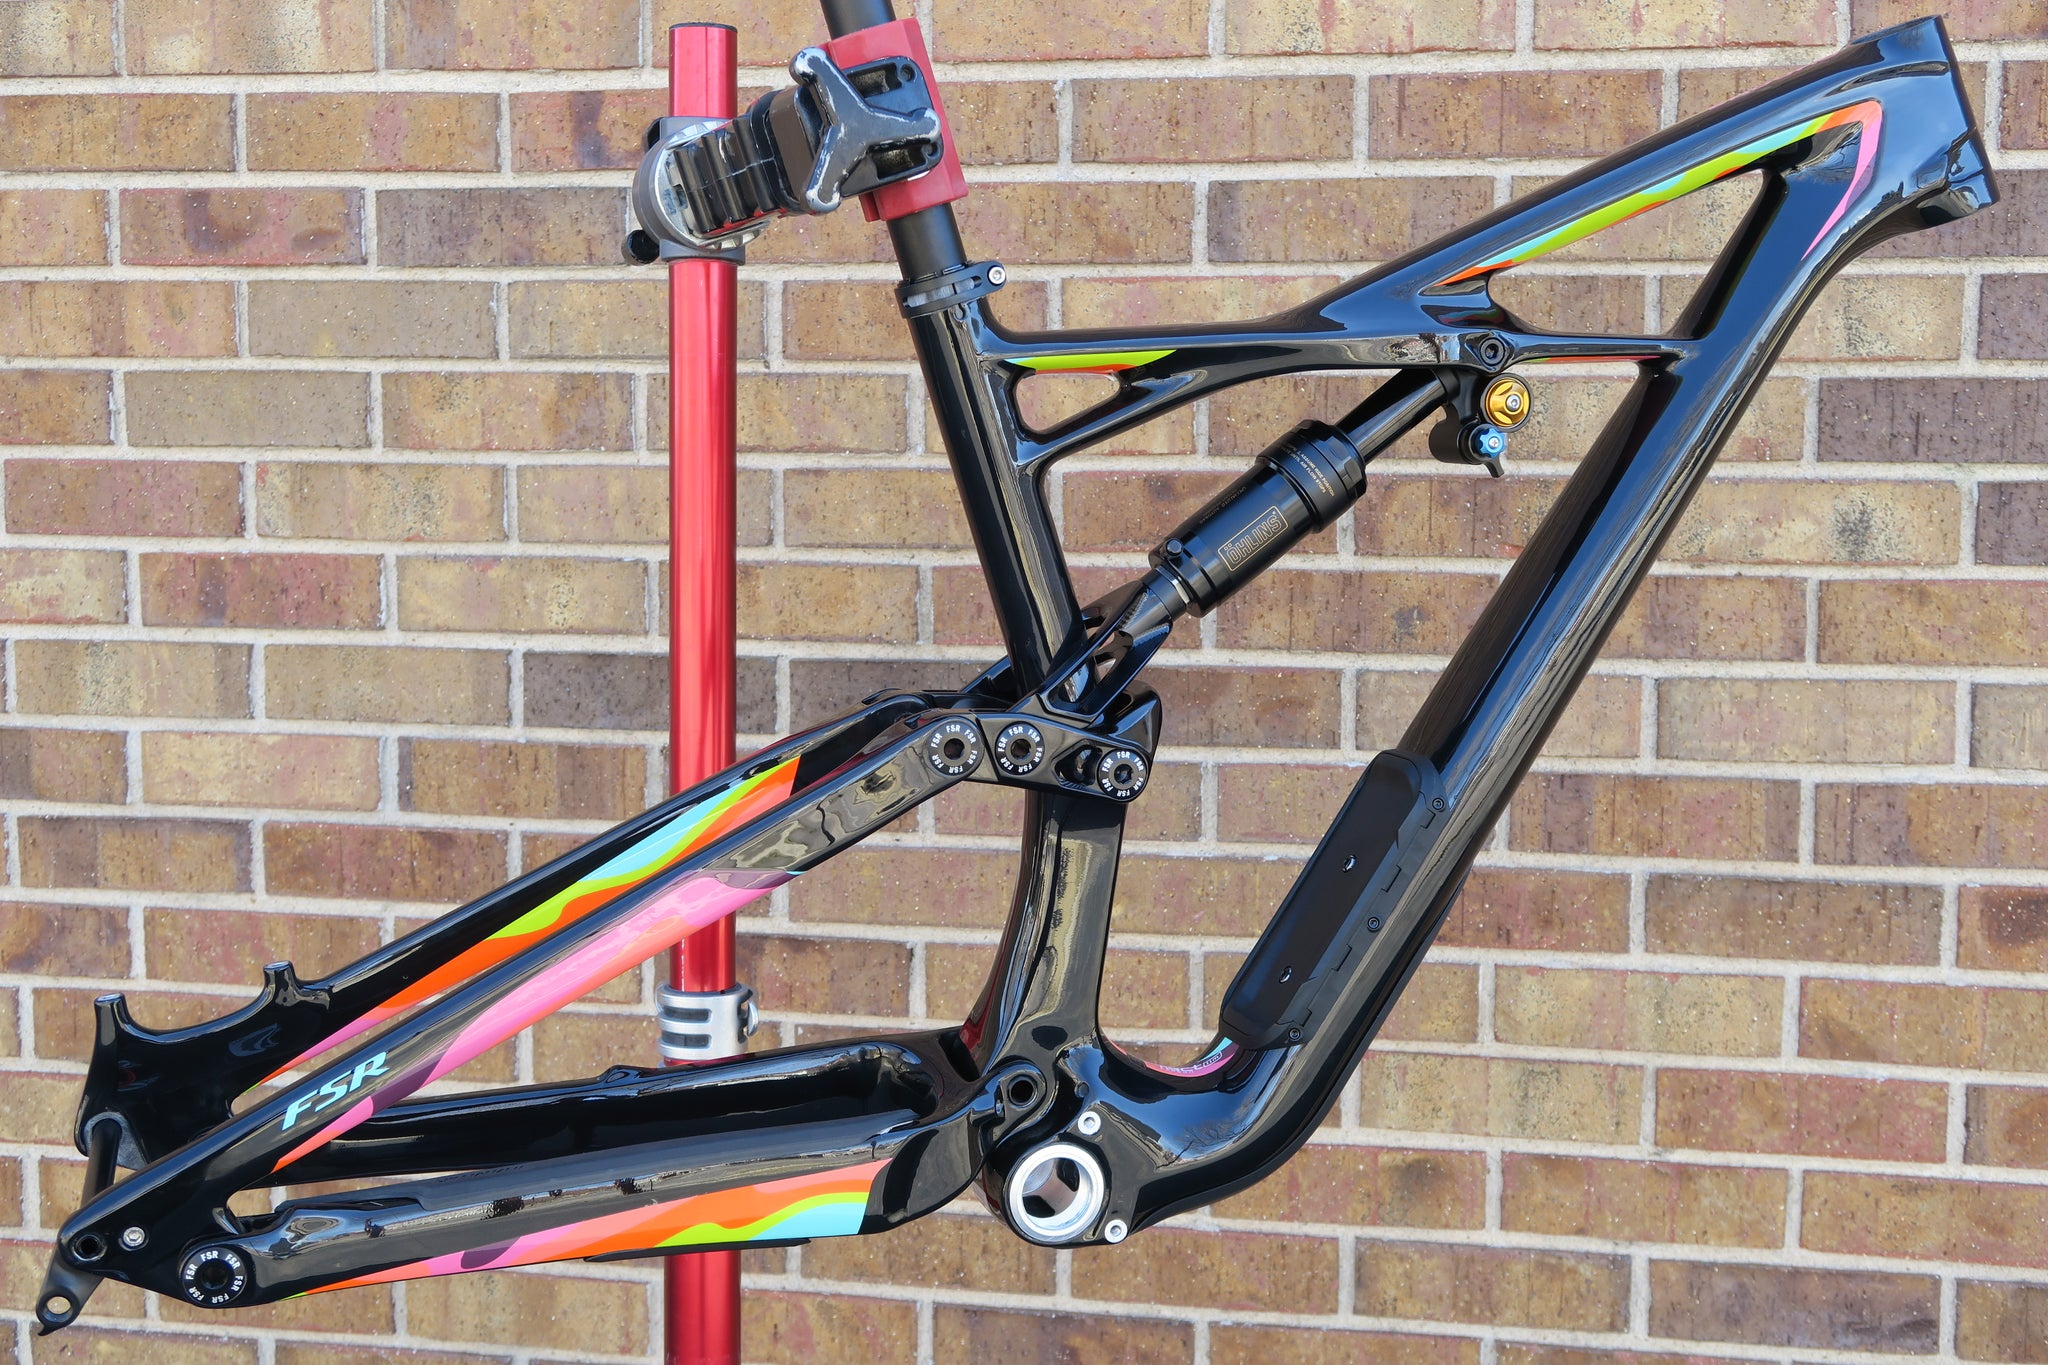 2017 SPECIALIZED S-WORKS ENDURO 650B CARBON FRAME M